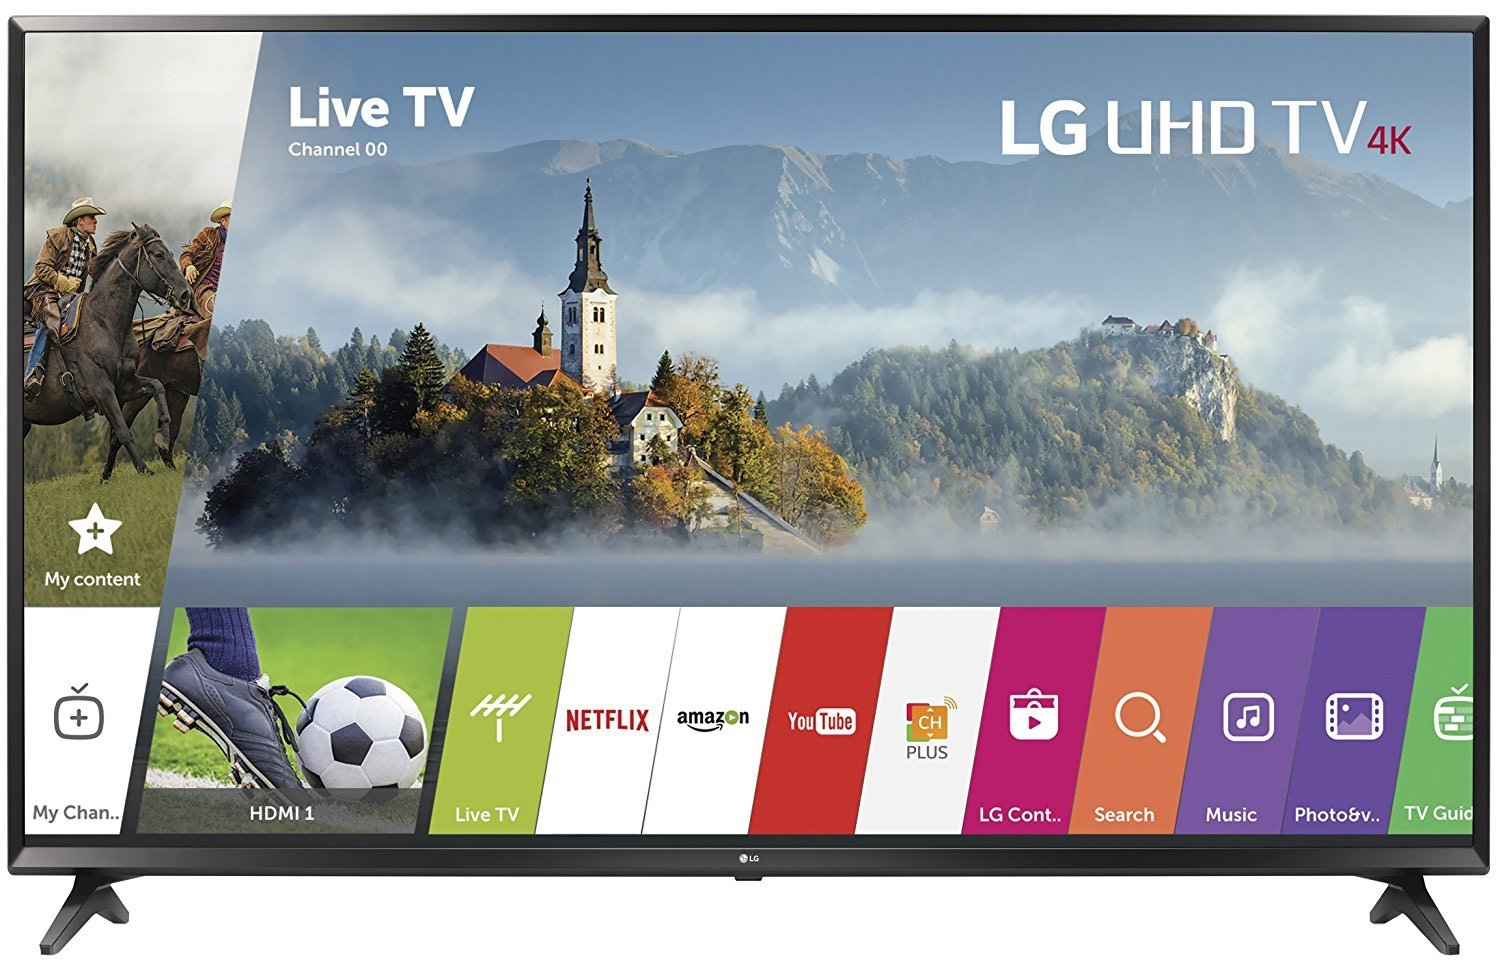 An image of LG 65UJ6200 65-Inch HDR 4K LED TV with LG TruMotion 120